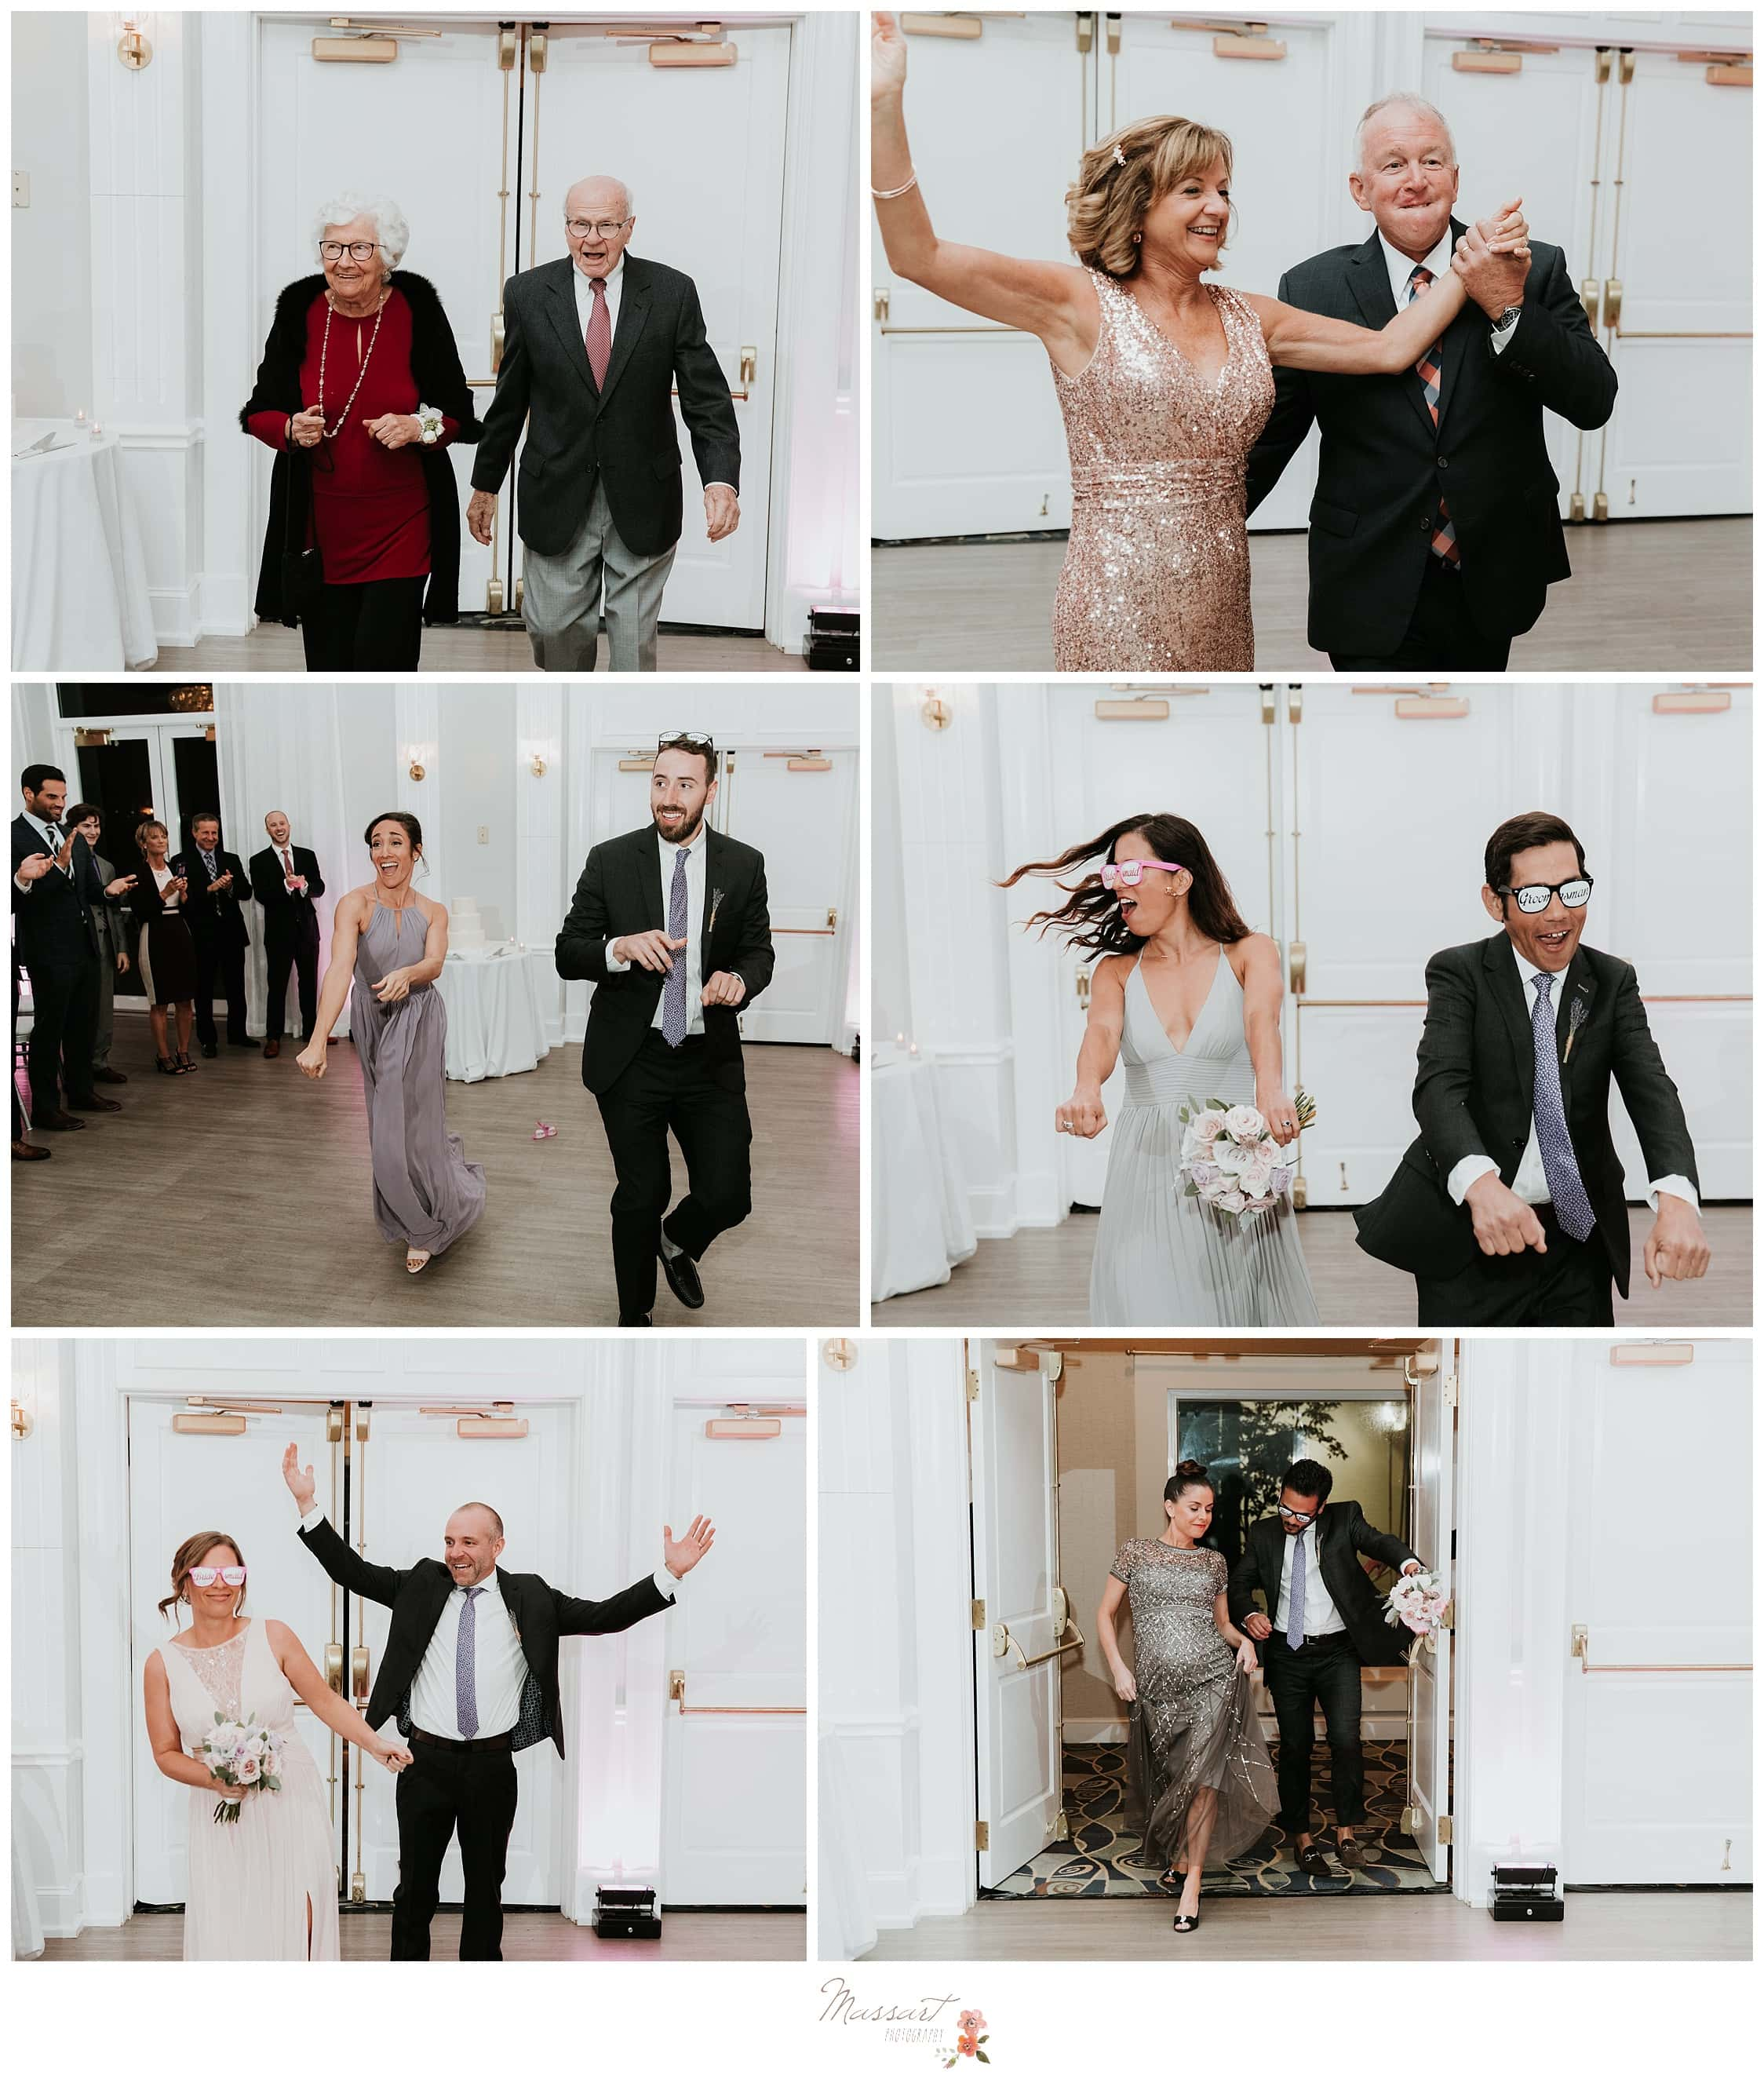 Portraits of the bridesmaids, groomsmen and the parents walking into the wedding reception photographed by Massart Photography Rhode Island